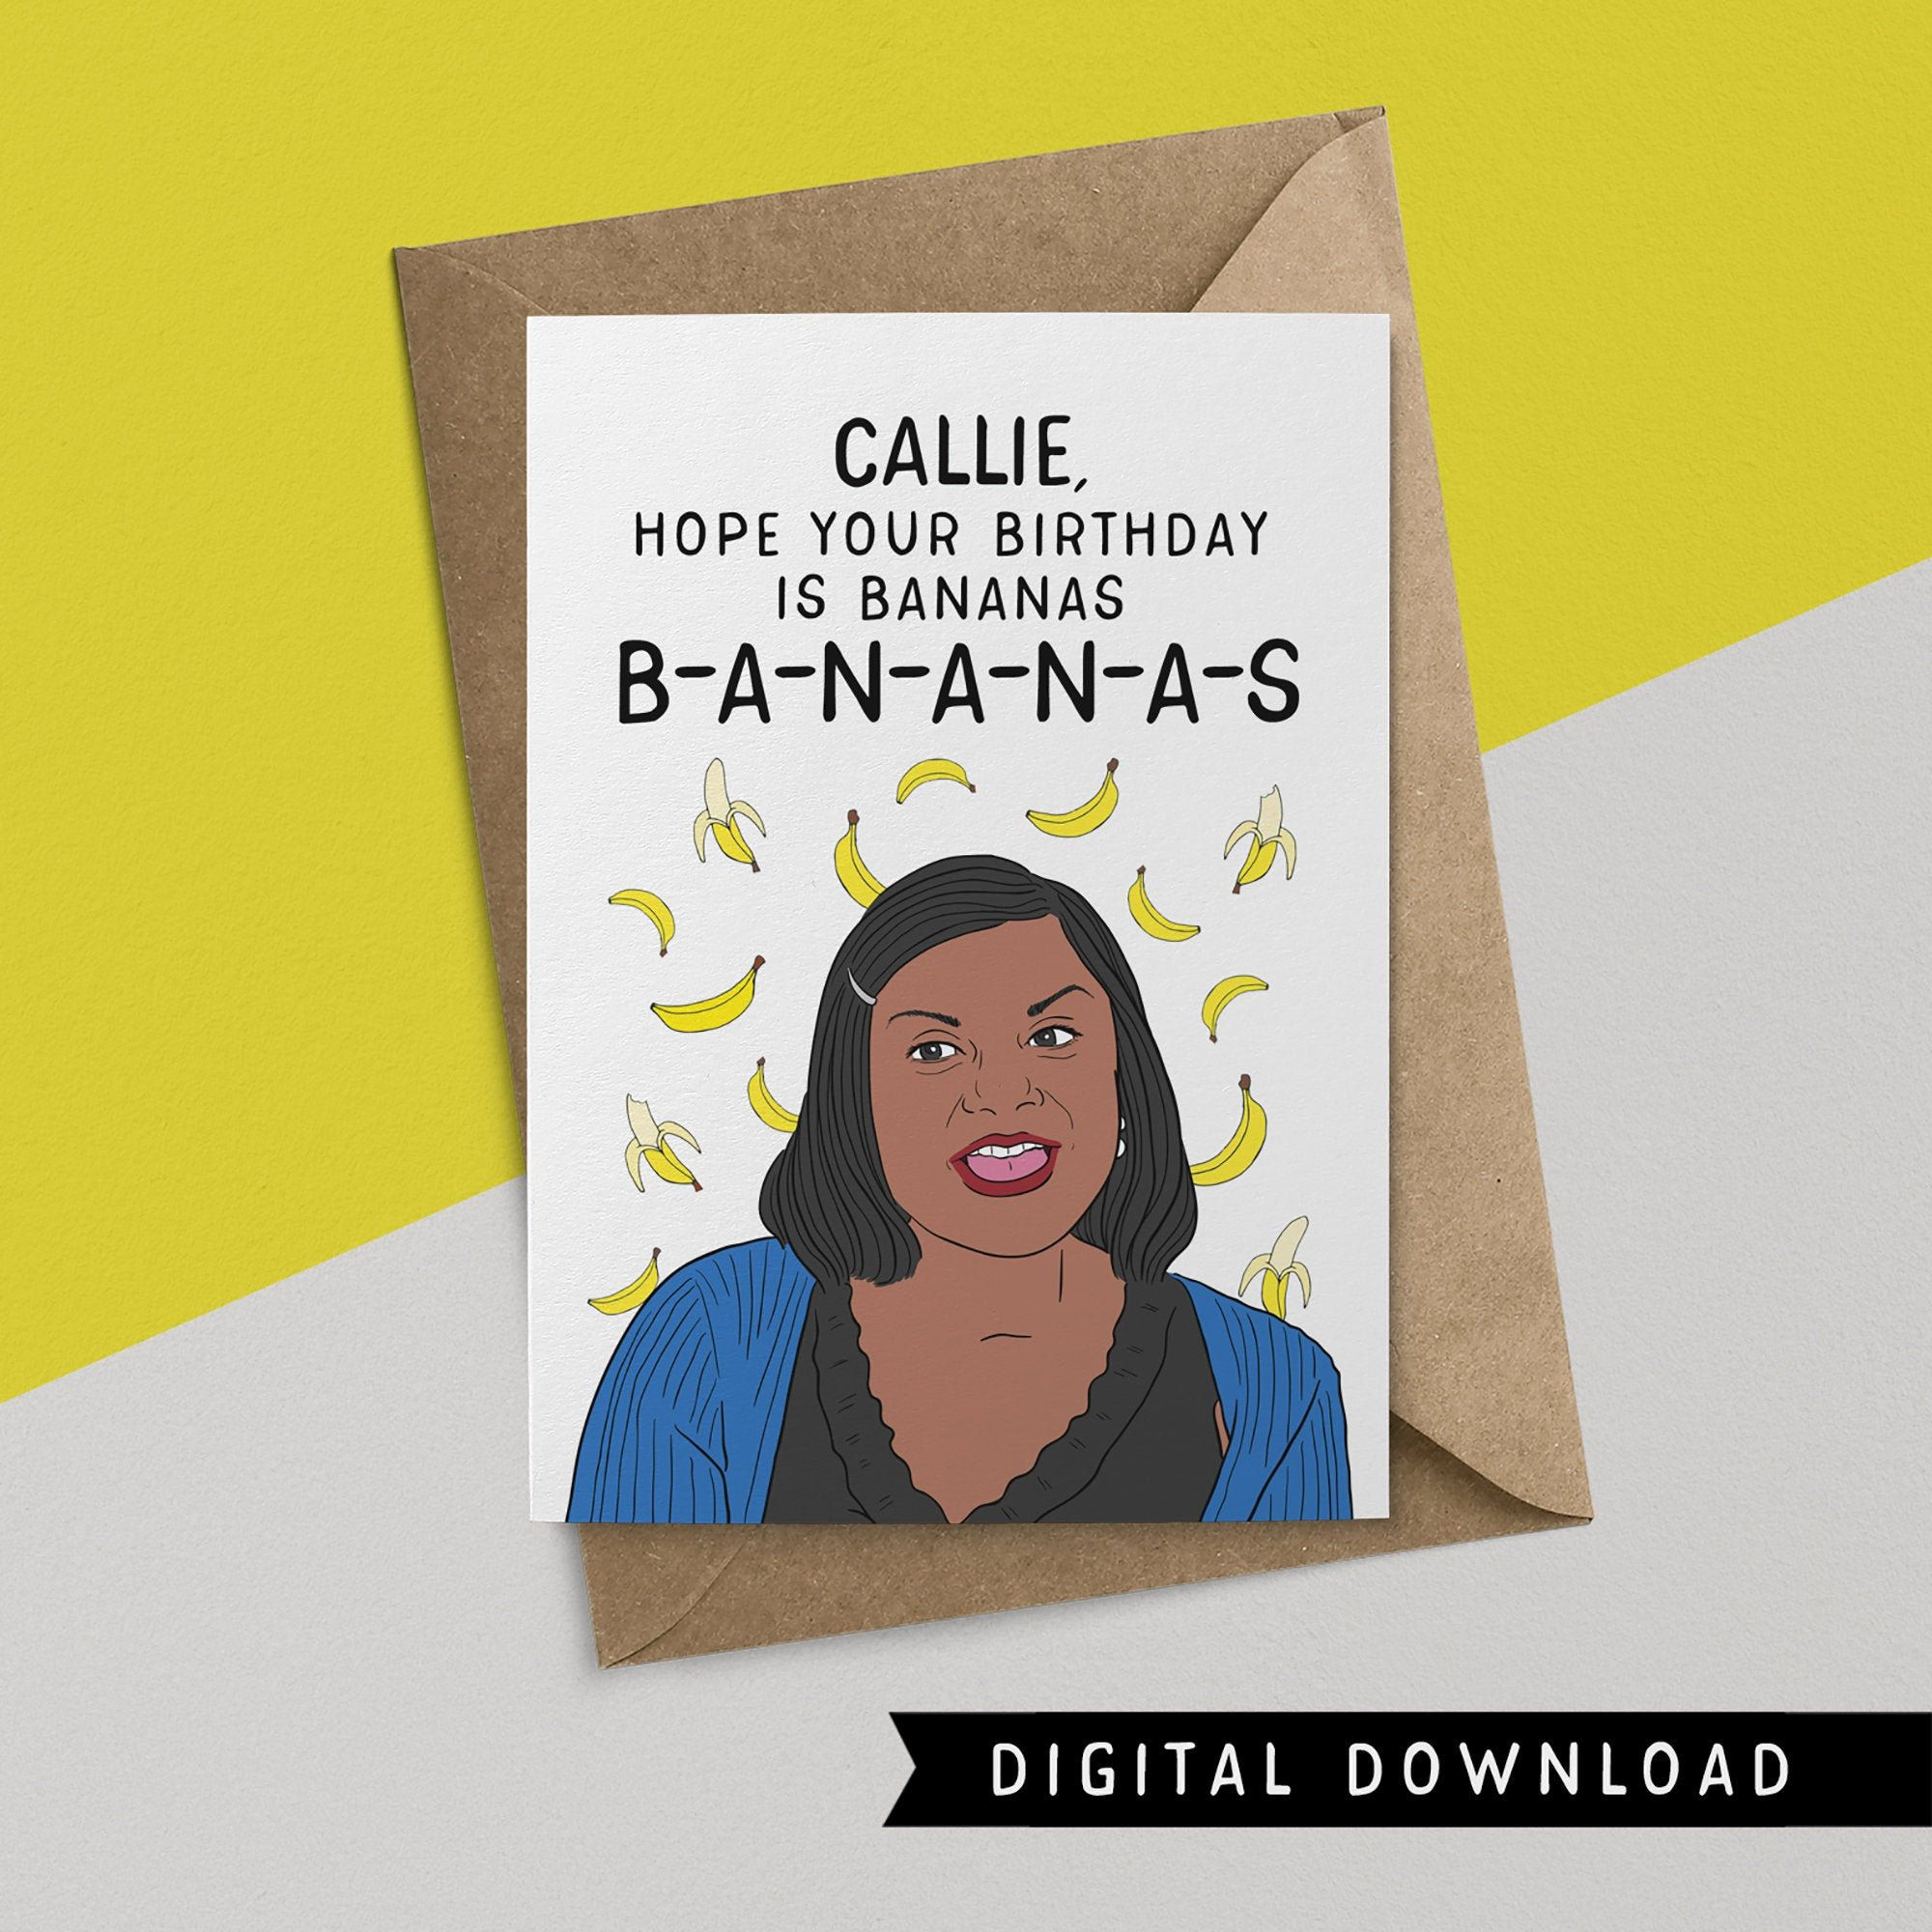 Buy 1 Get 1 Free Printable Birthday Card Instant Download Etsy In 2021 Office Cards Birthday Card Printable Free Printable Birthday Cards